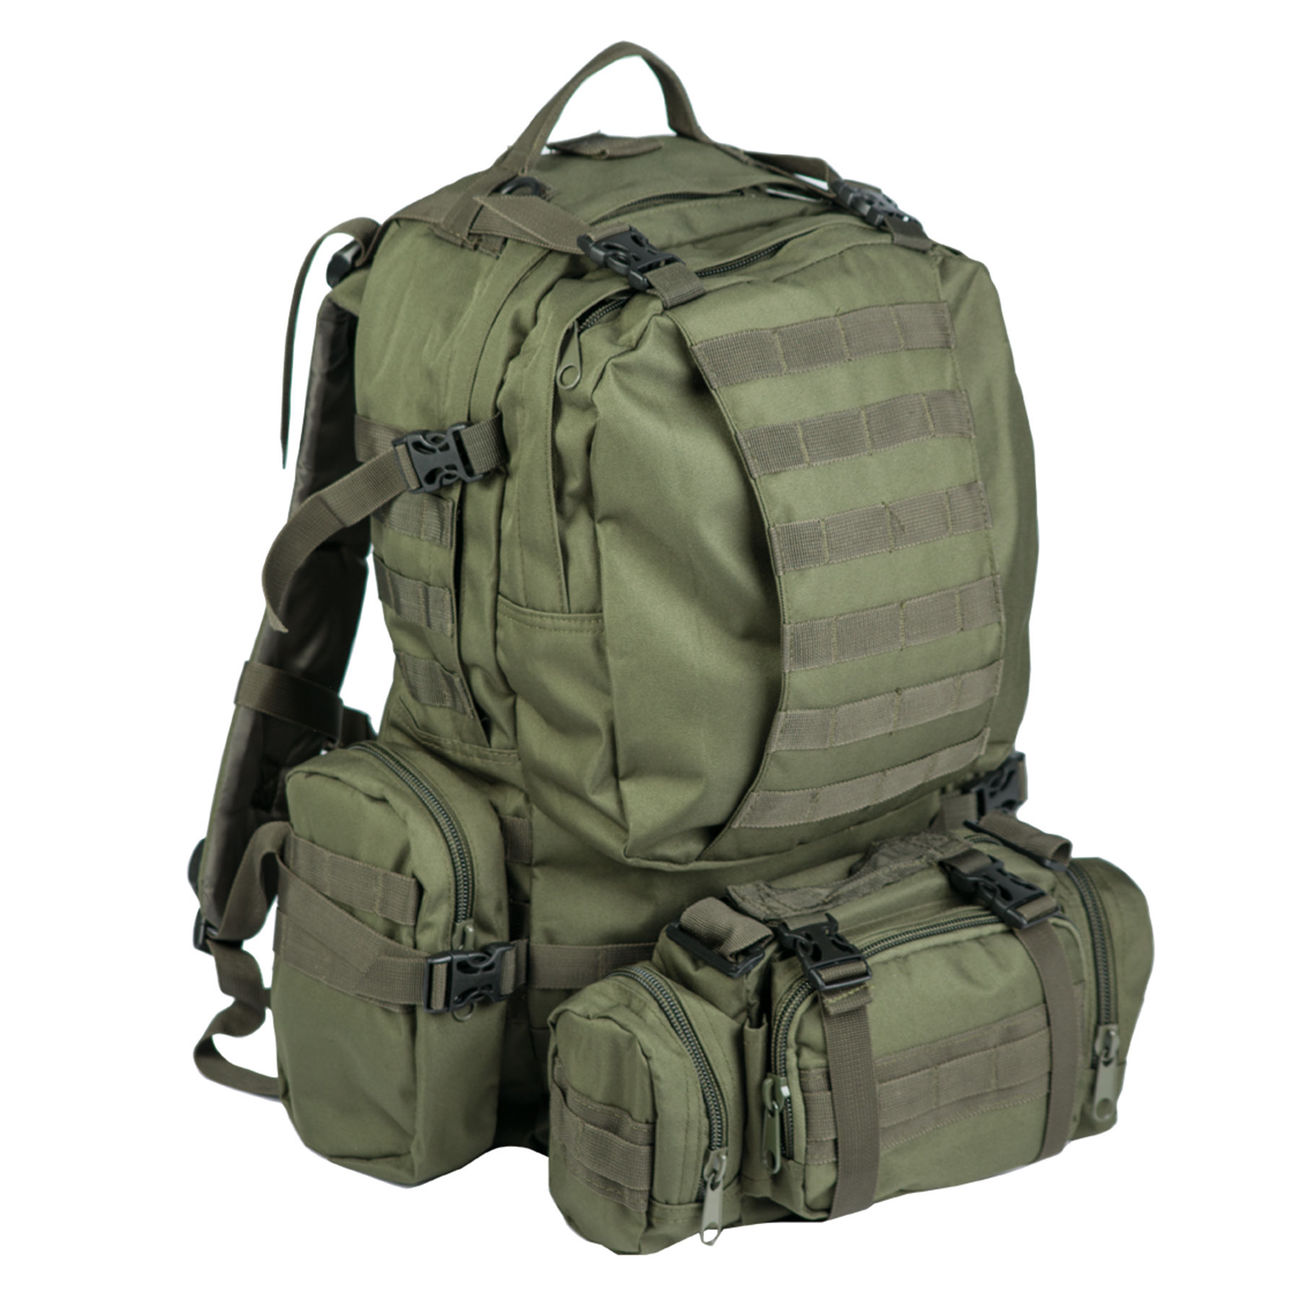 Mil-Tec Rucksack Defense Pack Assembly 36 ltr. olive 0